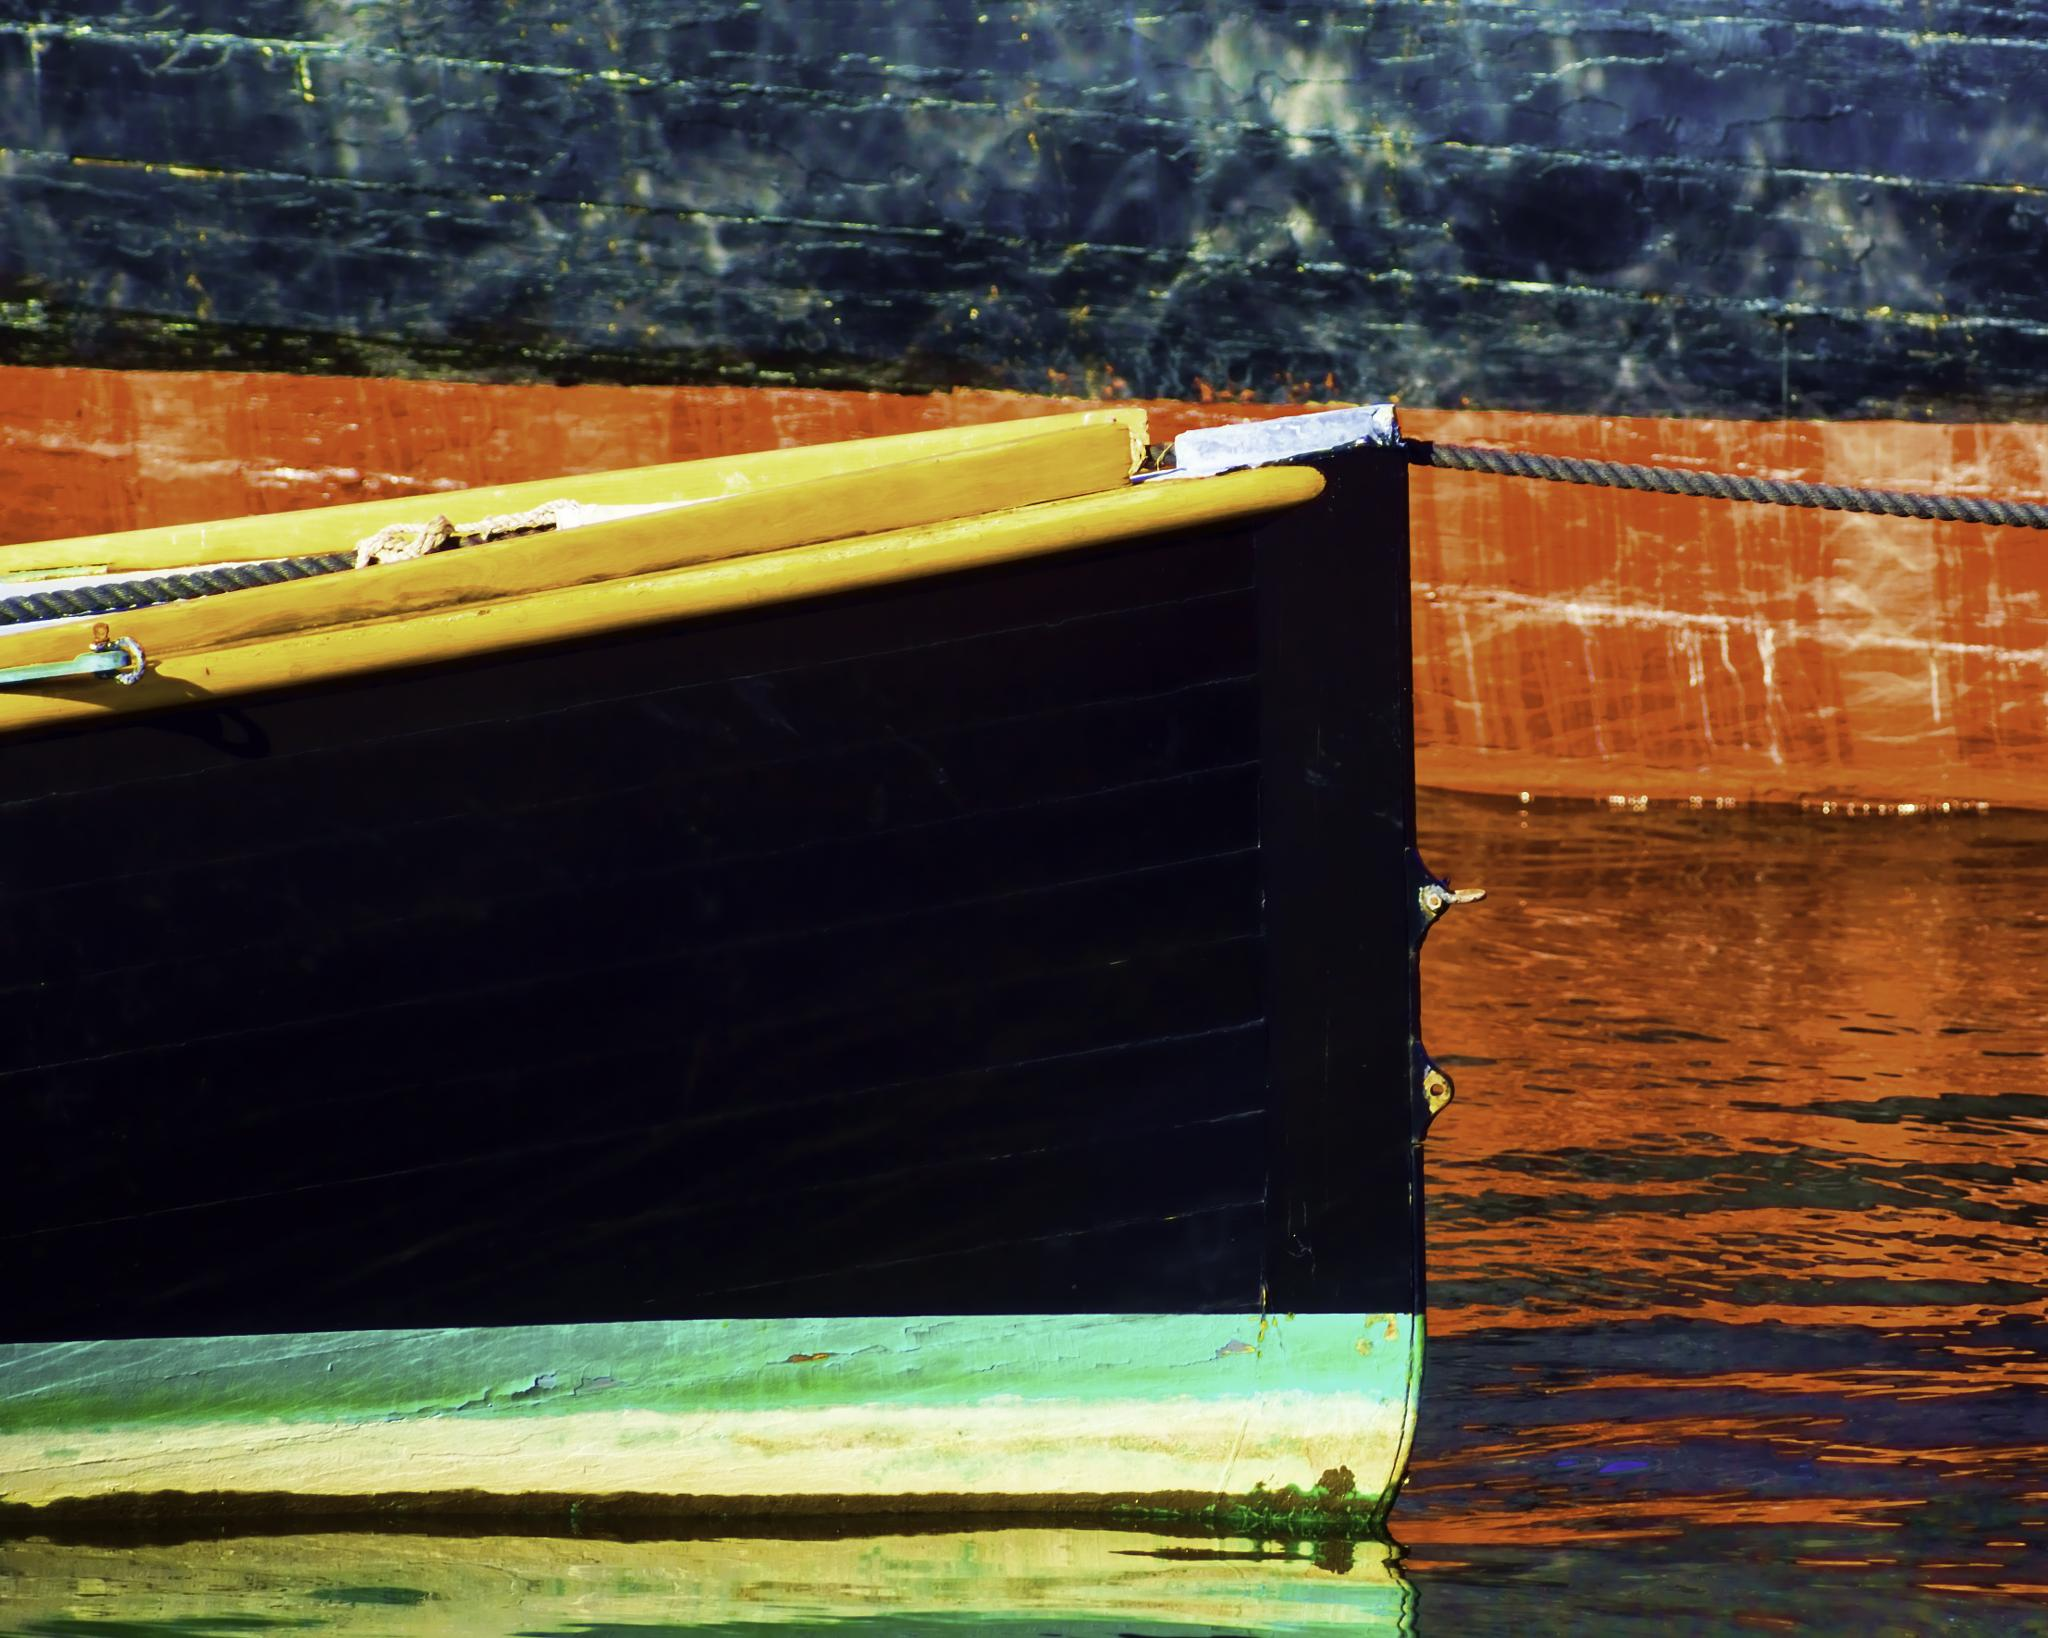 Wooden Hulls by JoeGeraci